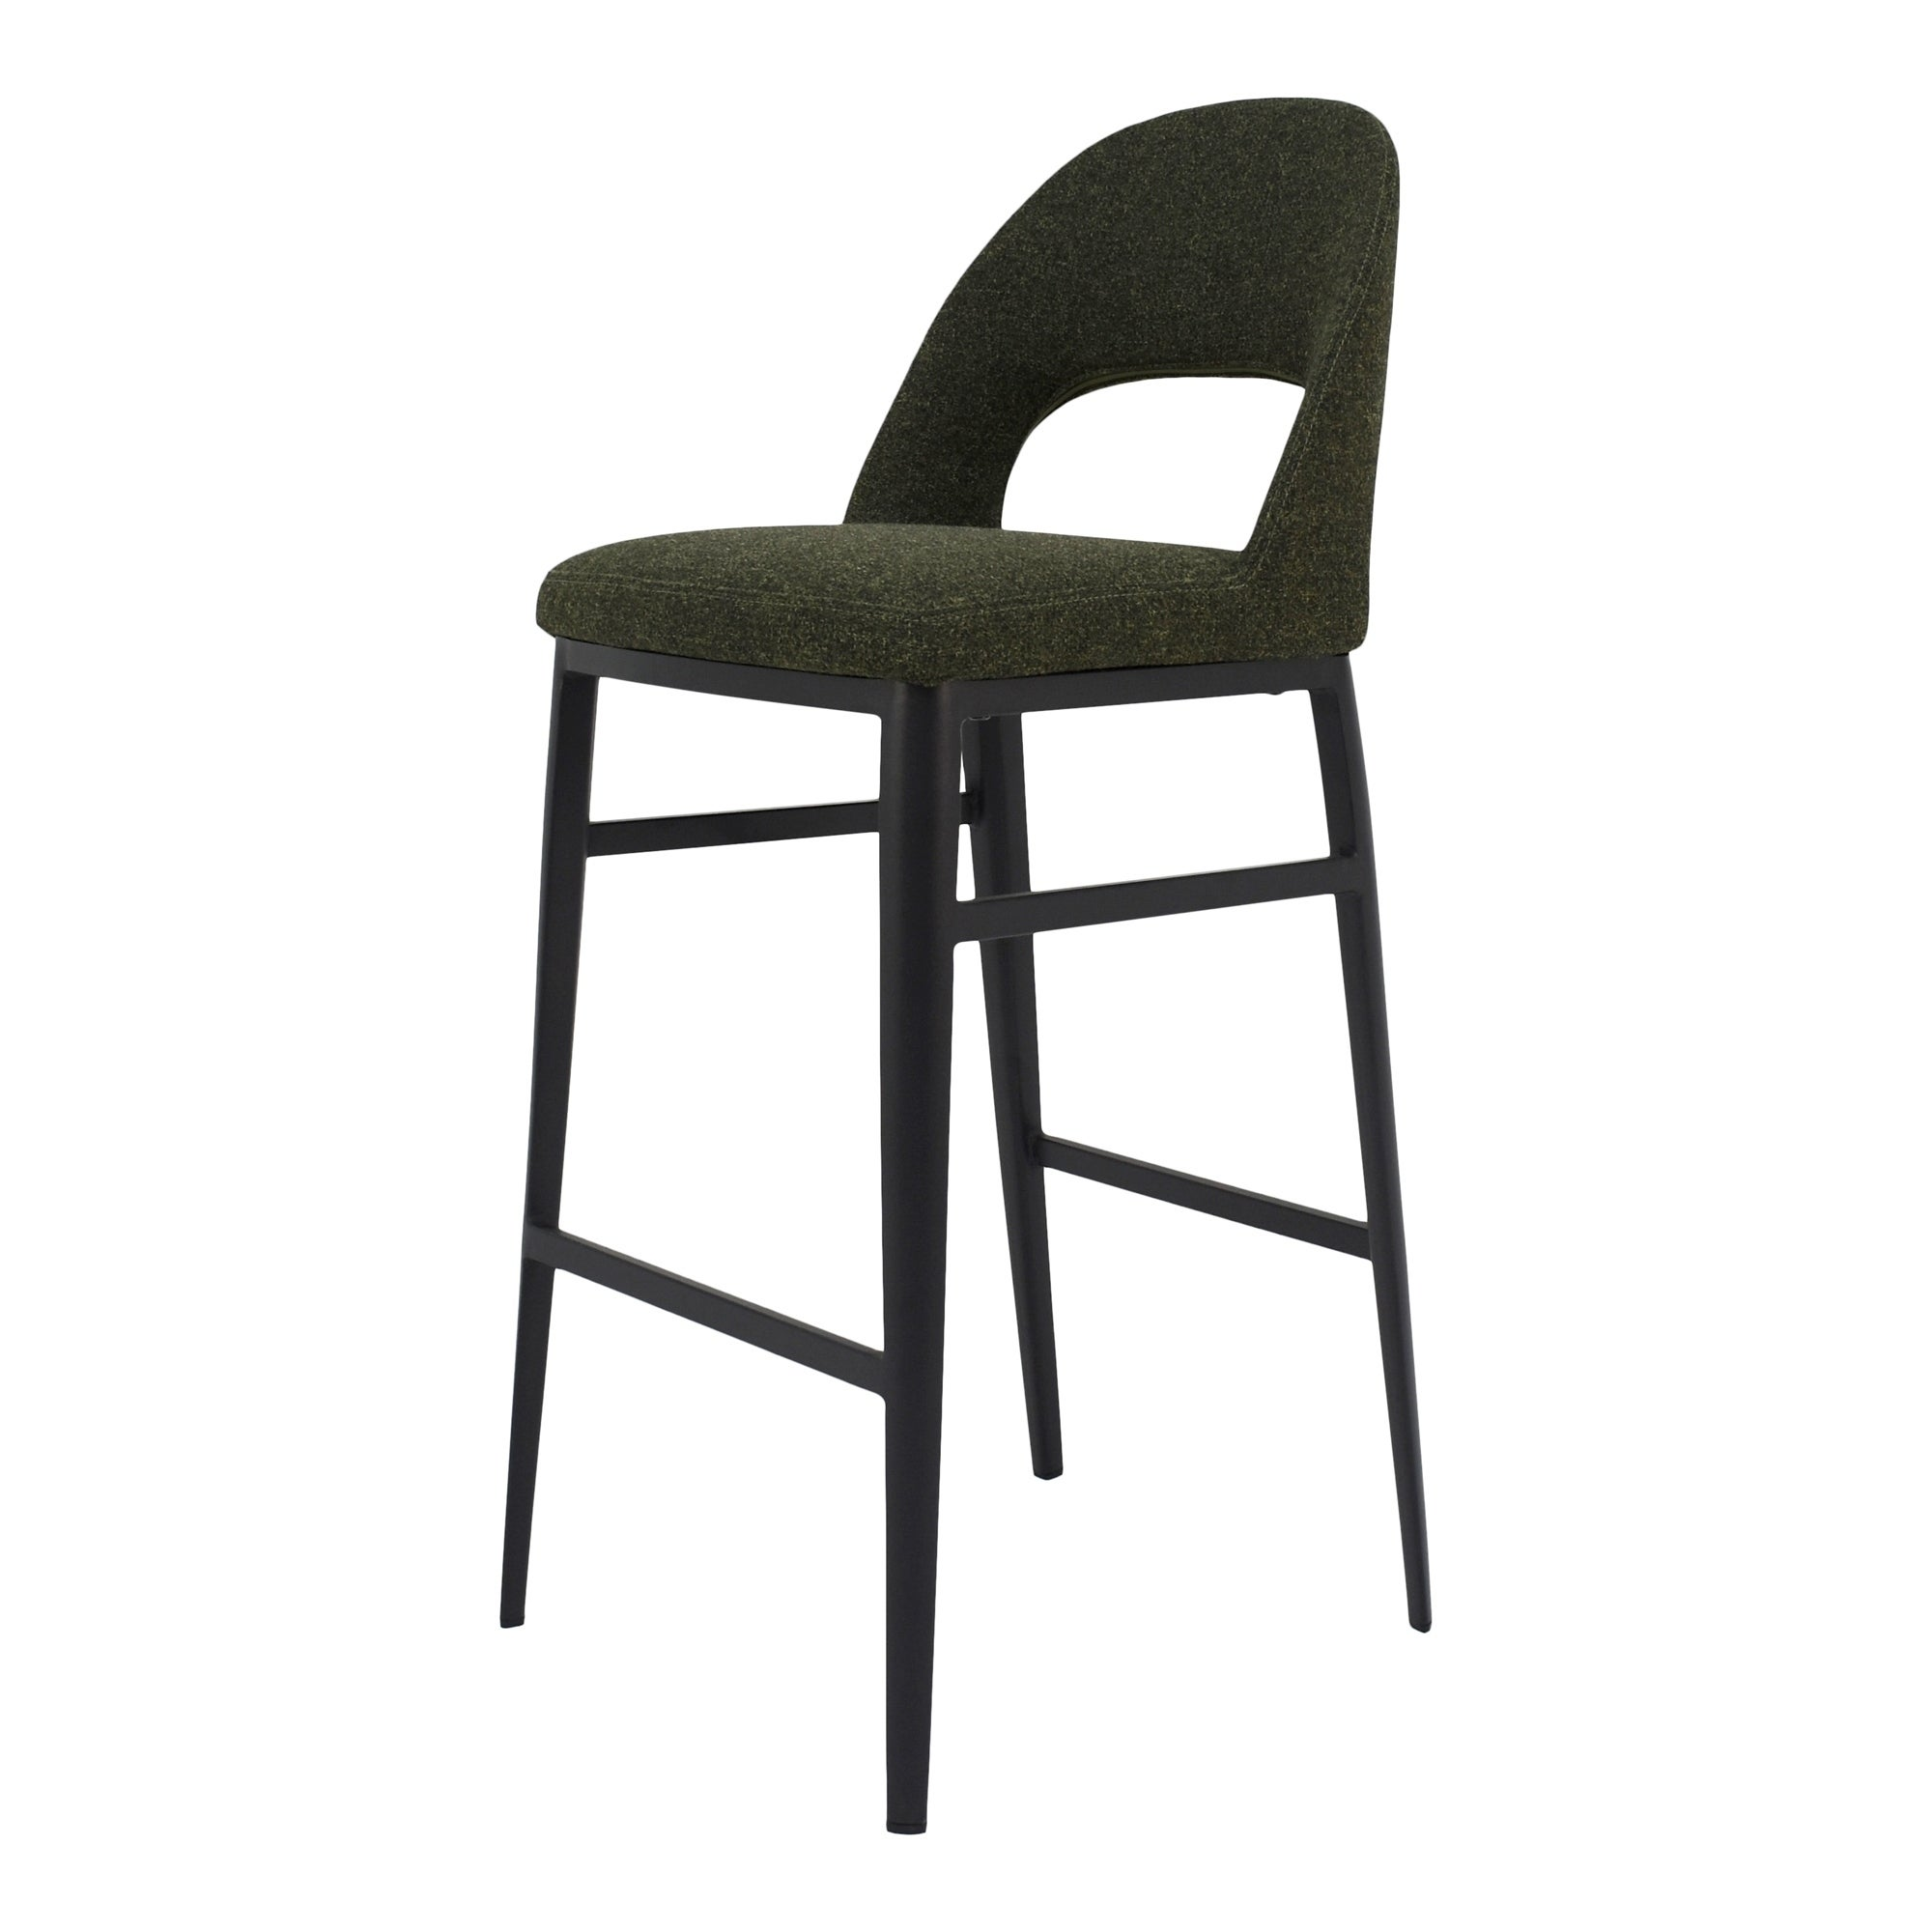 Round Folding Padded Stool Office Kitchen Breakfast Stools Metal Frame Black